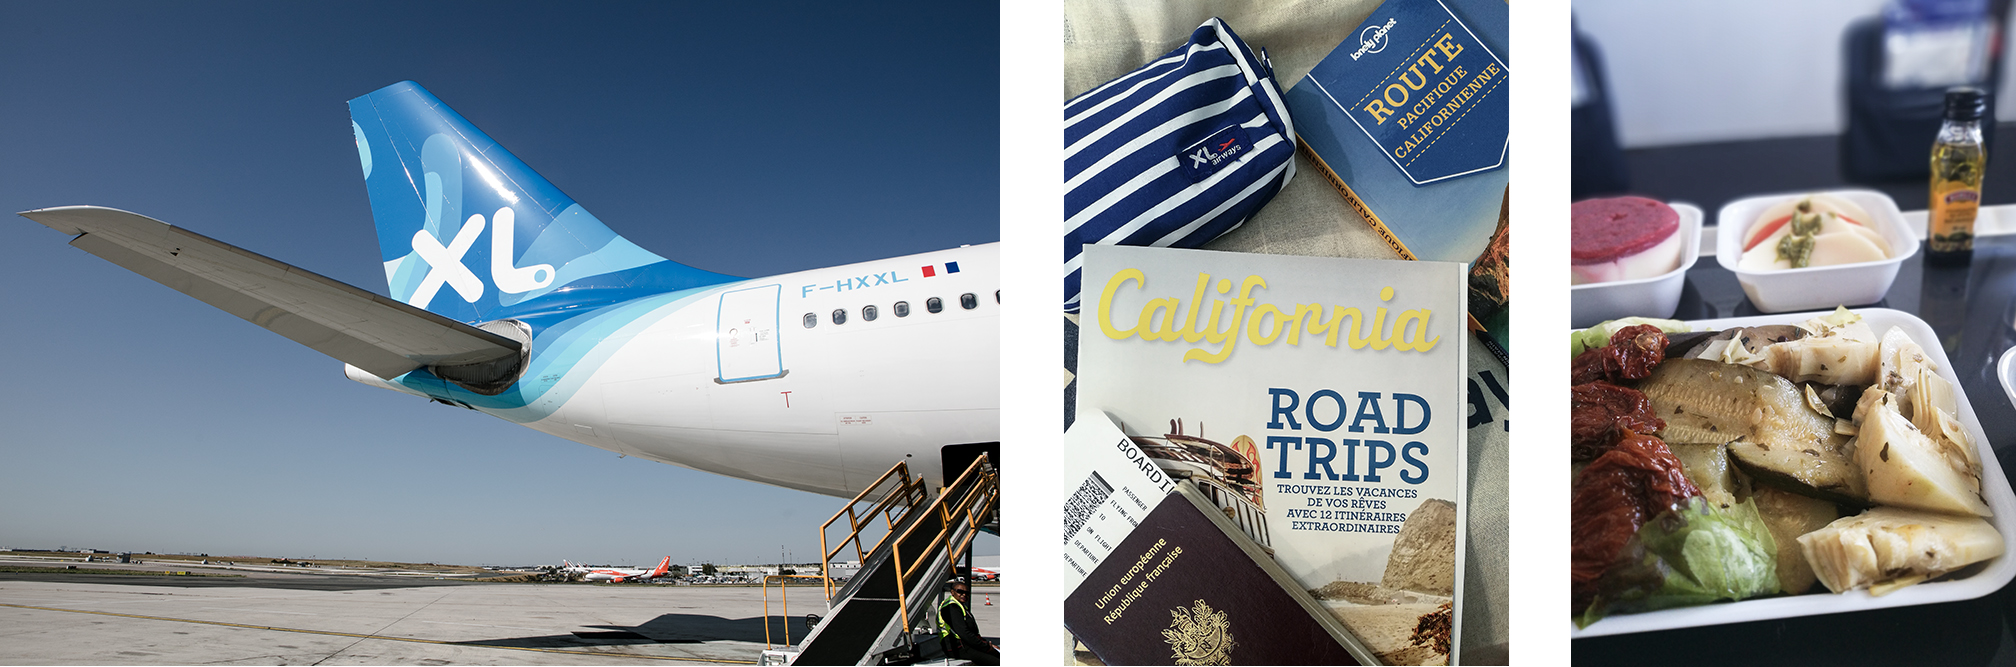 vol Paris Los Angeles avec XL Airways